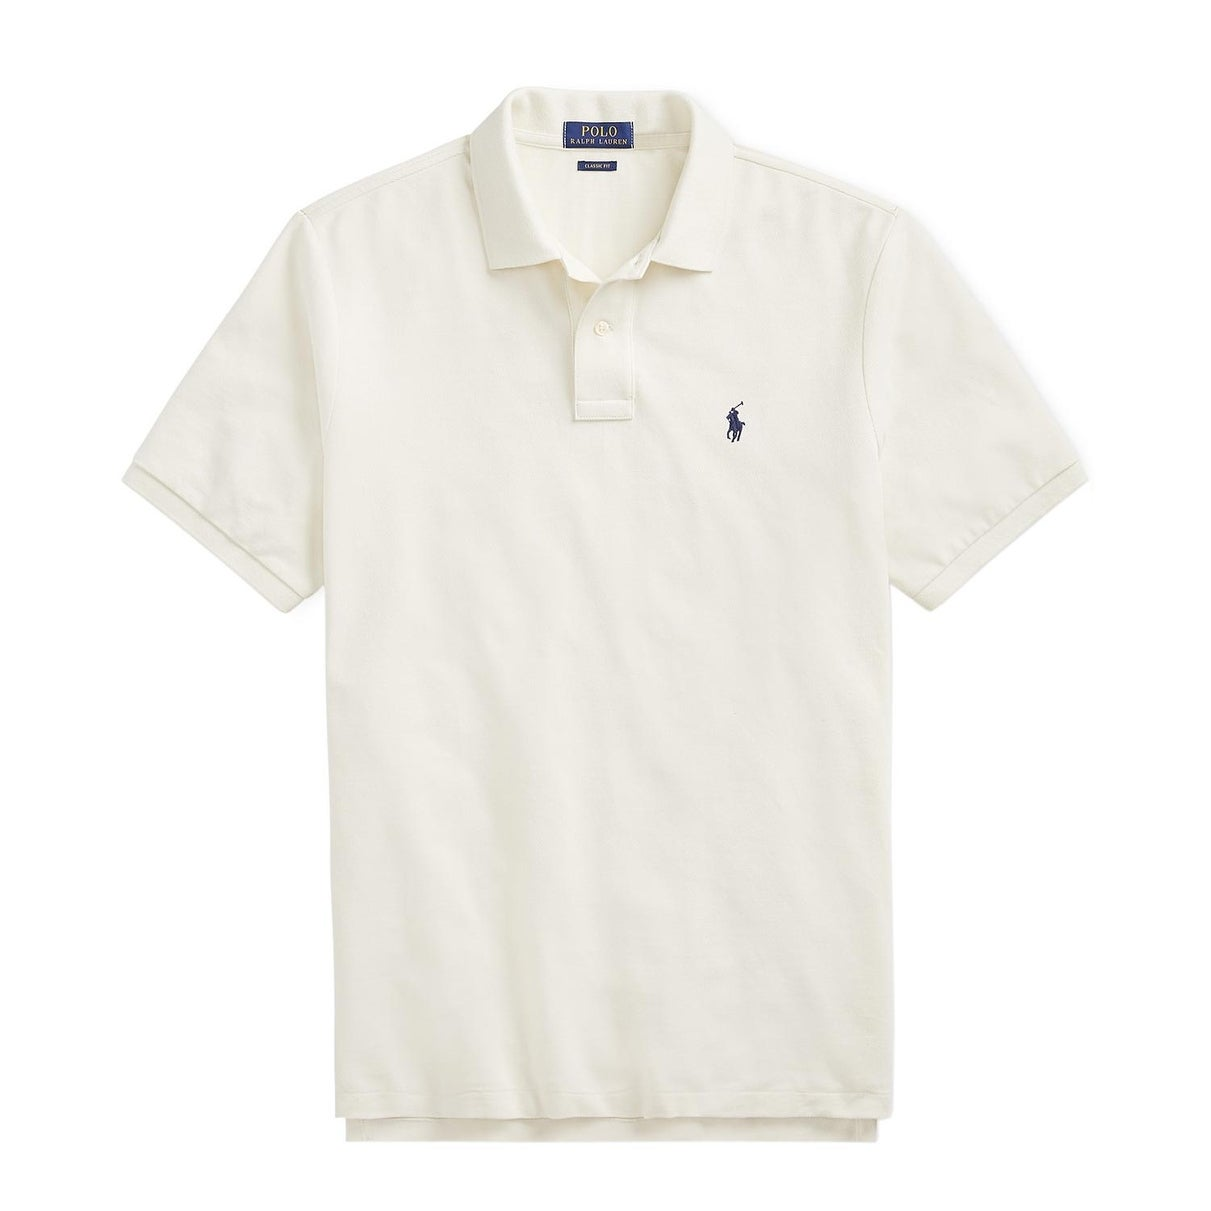 ralph lauren mens white short sleeve shirt